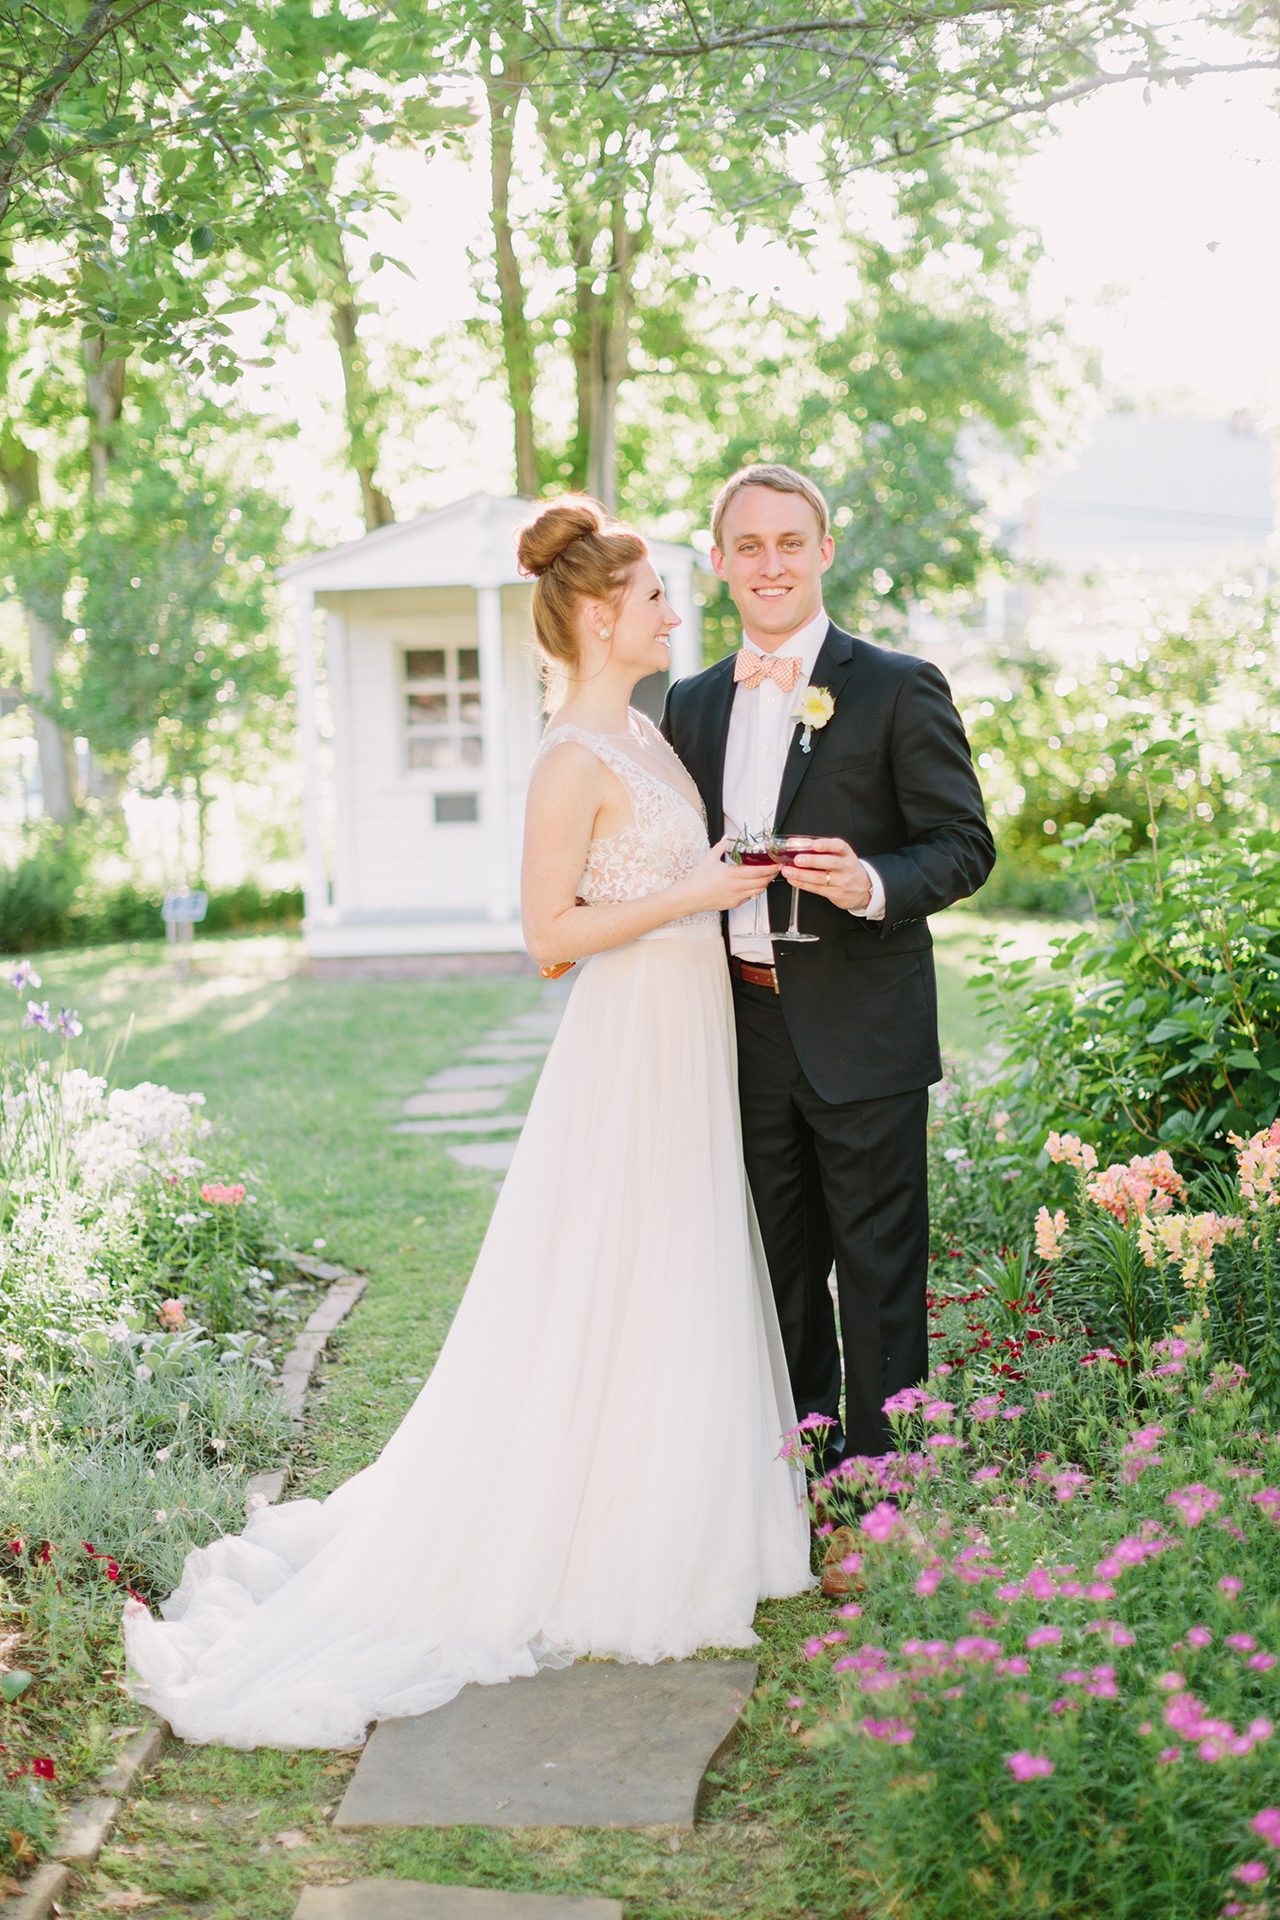 Curran Hall Summer wedding inspiration in Little Rock, Arkansas